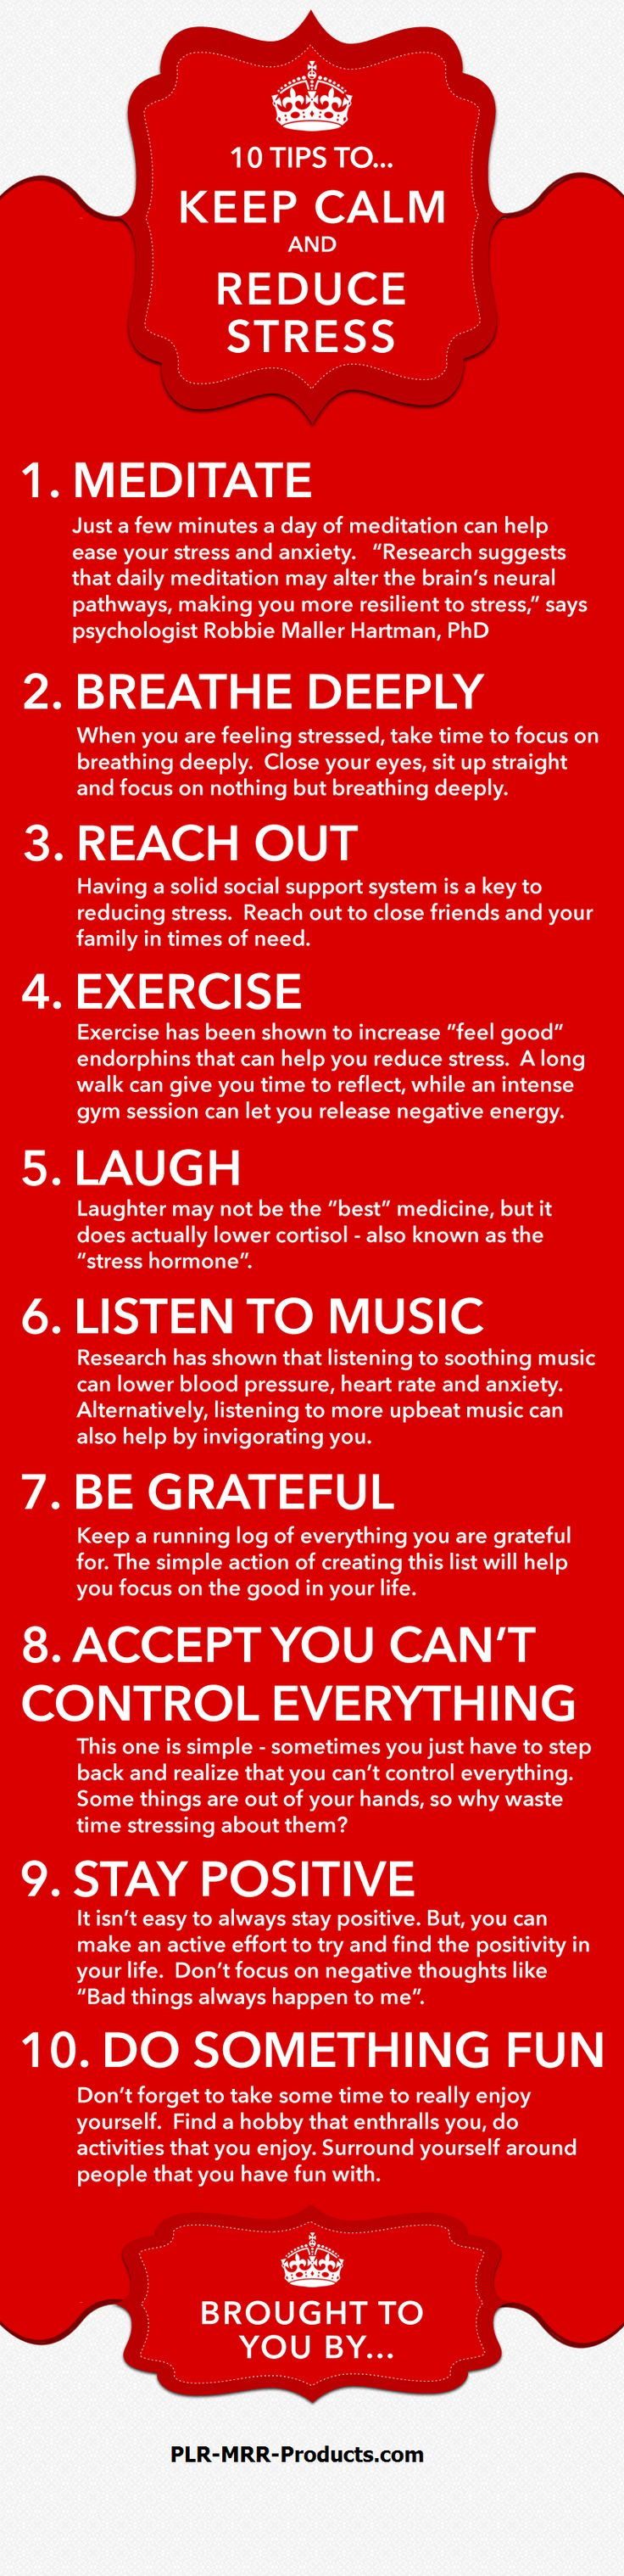 10 Tips To... Keep Calm & Reduce Stress